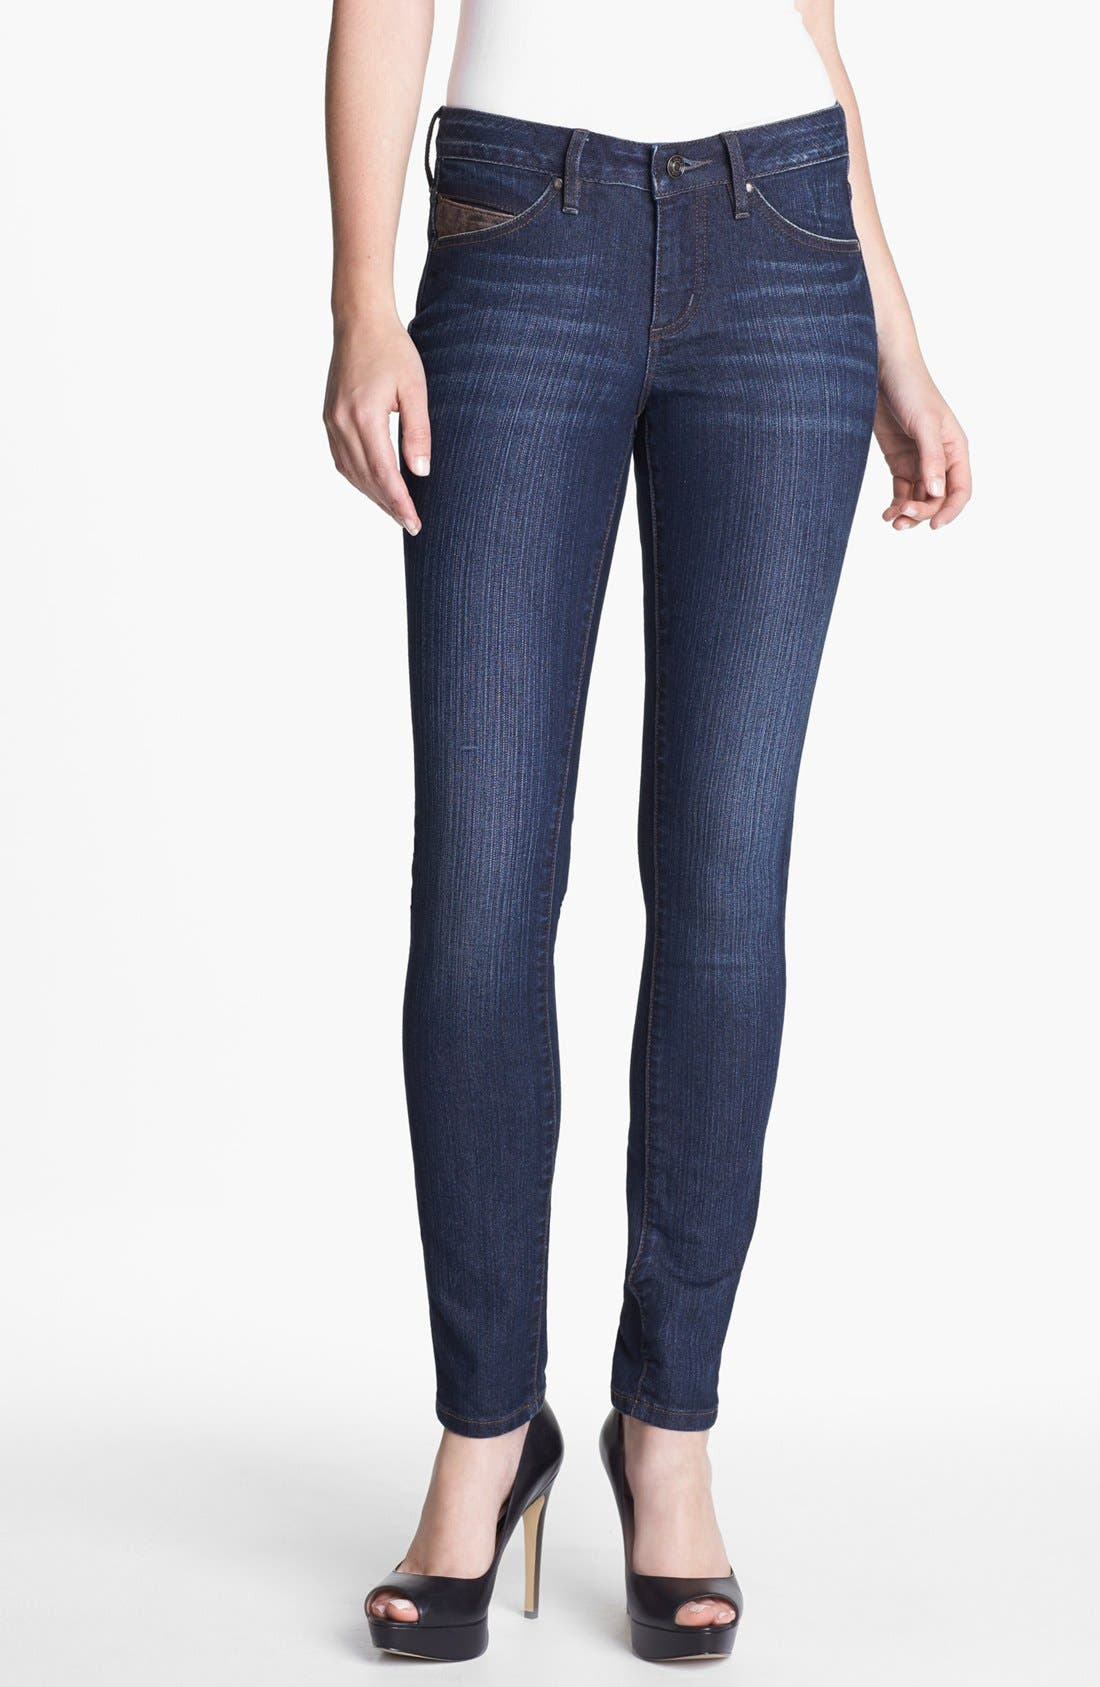 Alternate Image 1 Selected - Jag Jeans 'Reece' Skinny Stretch Jeans (Online Only)